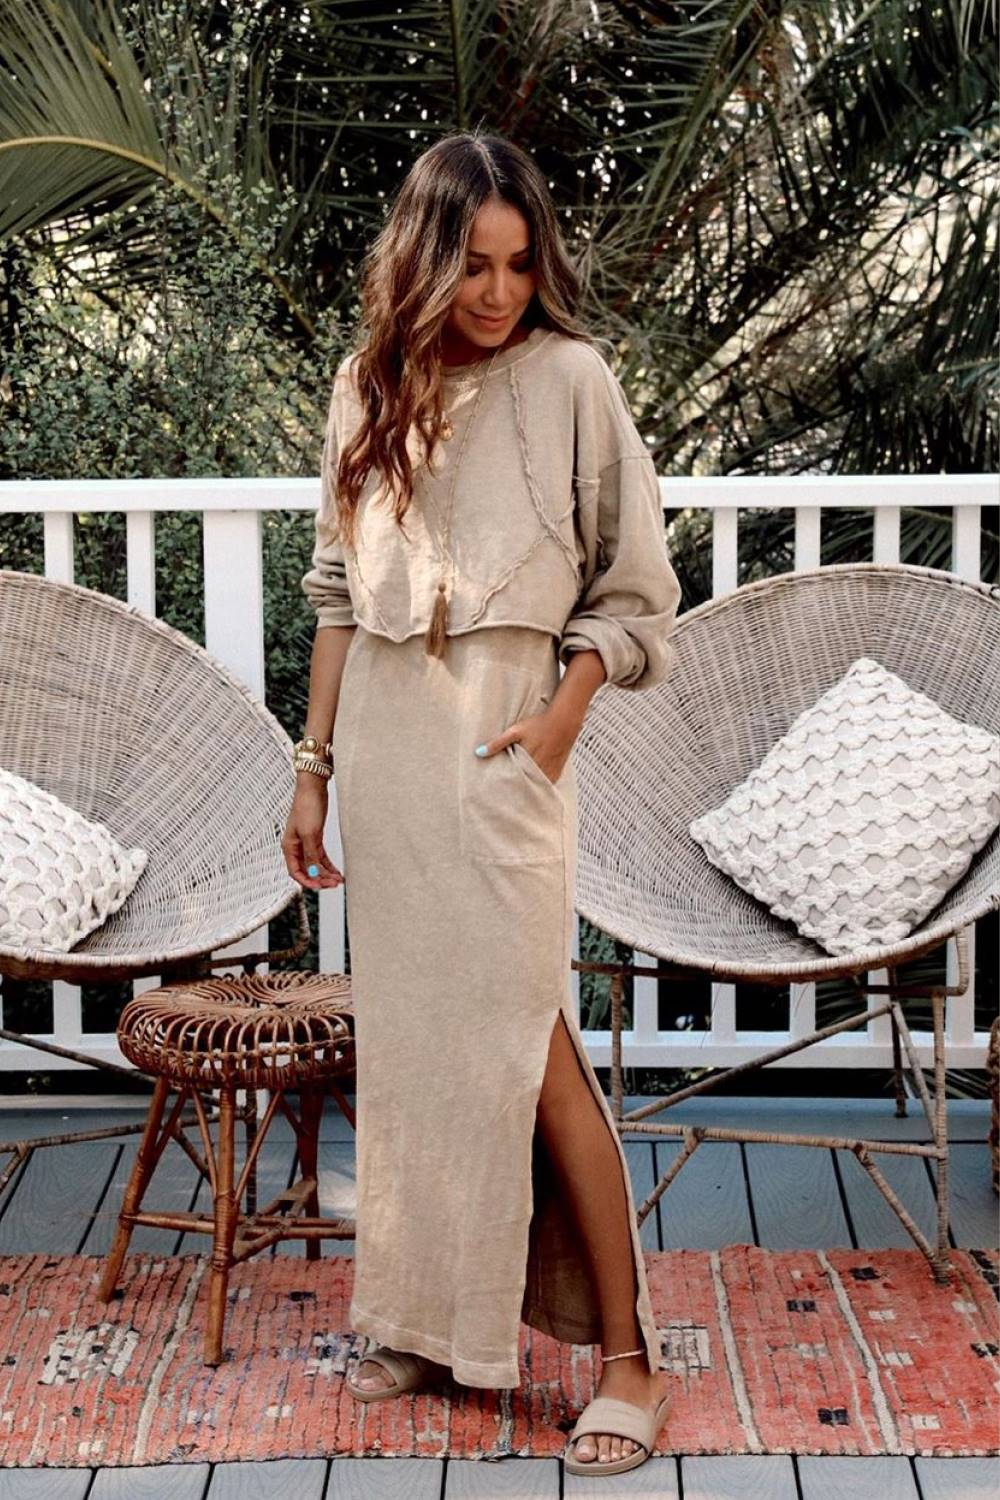 Chicas bajitas @sincerelyjules total look